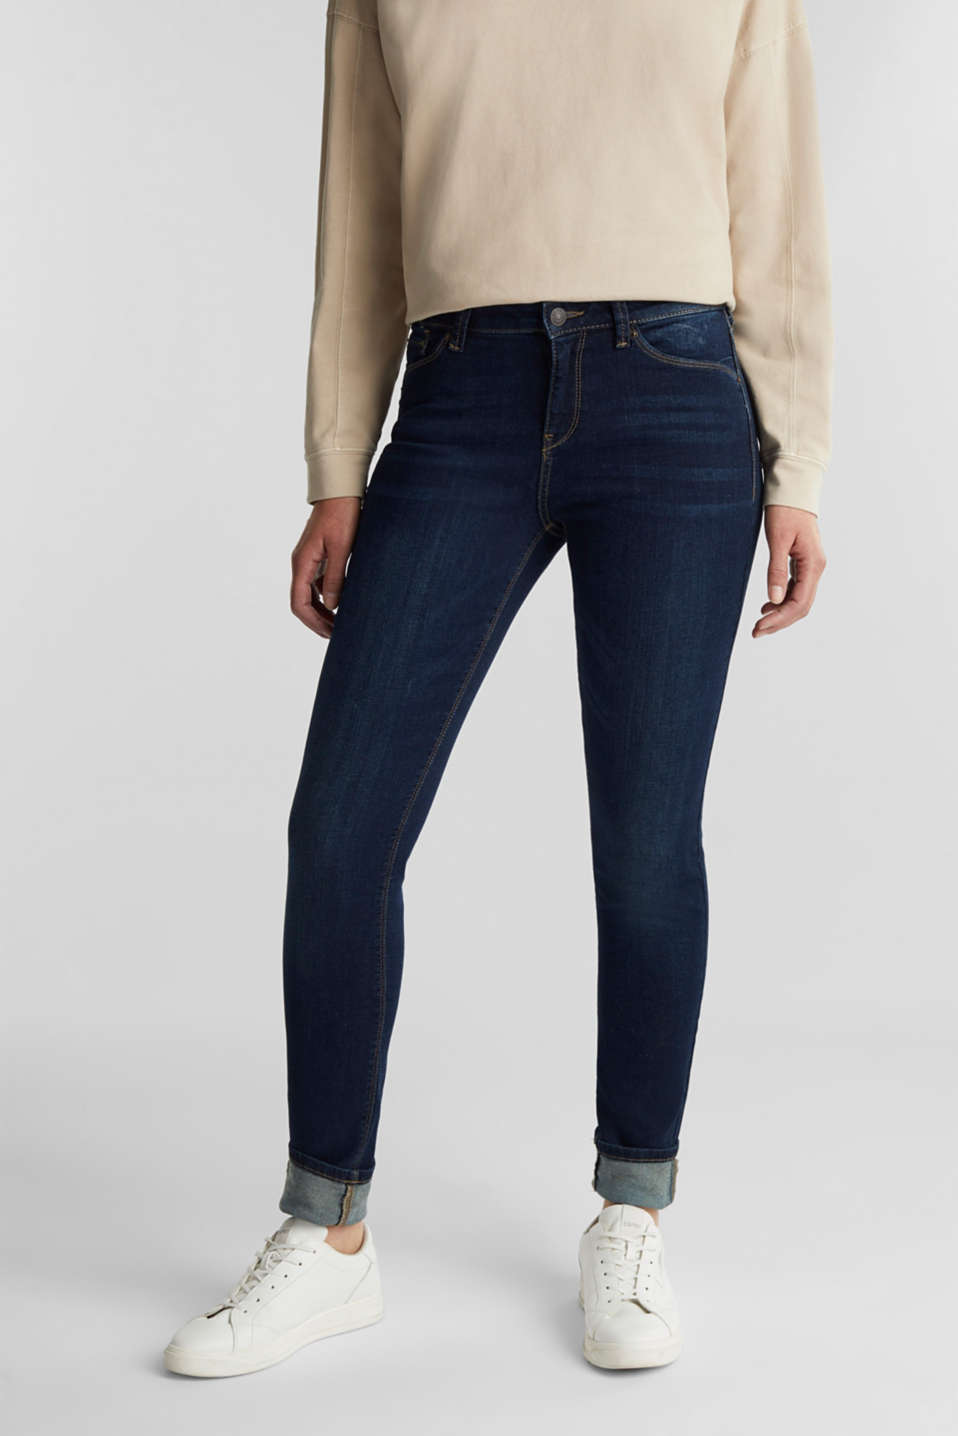 Esprit - Stretch organic cotton blend jeans